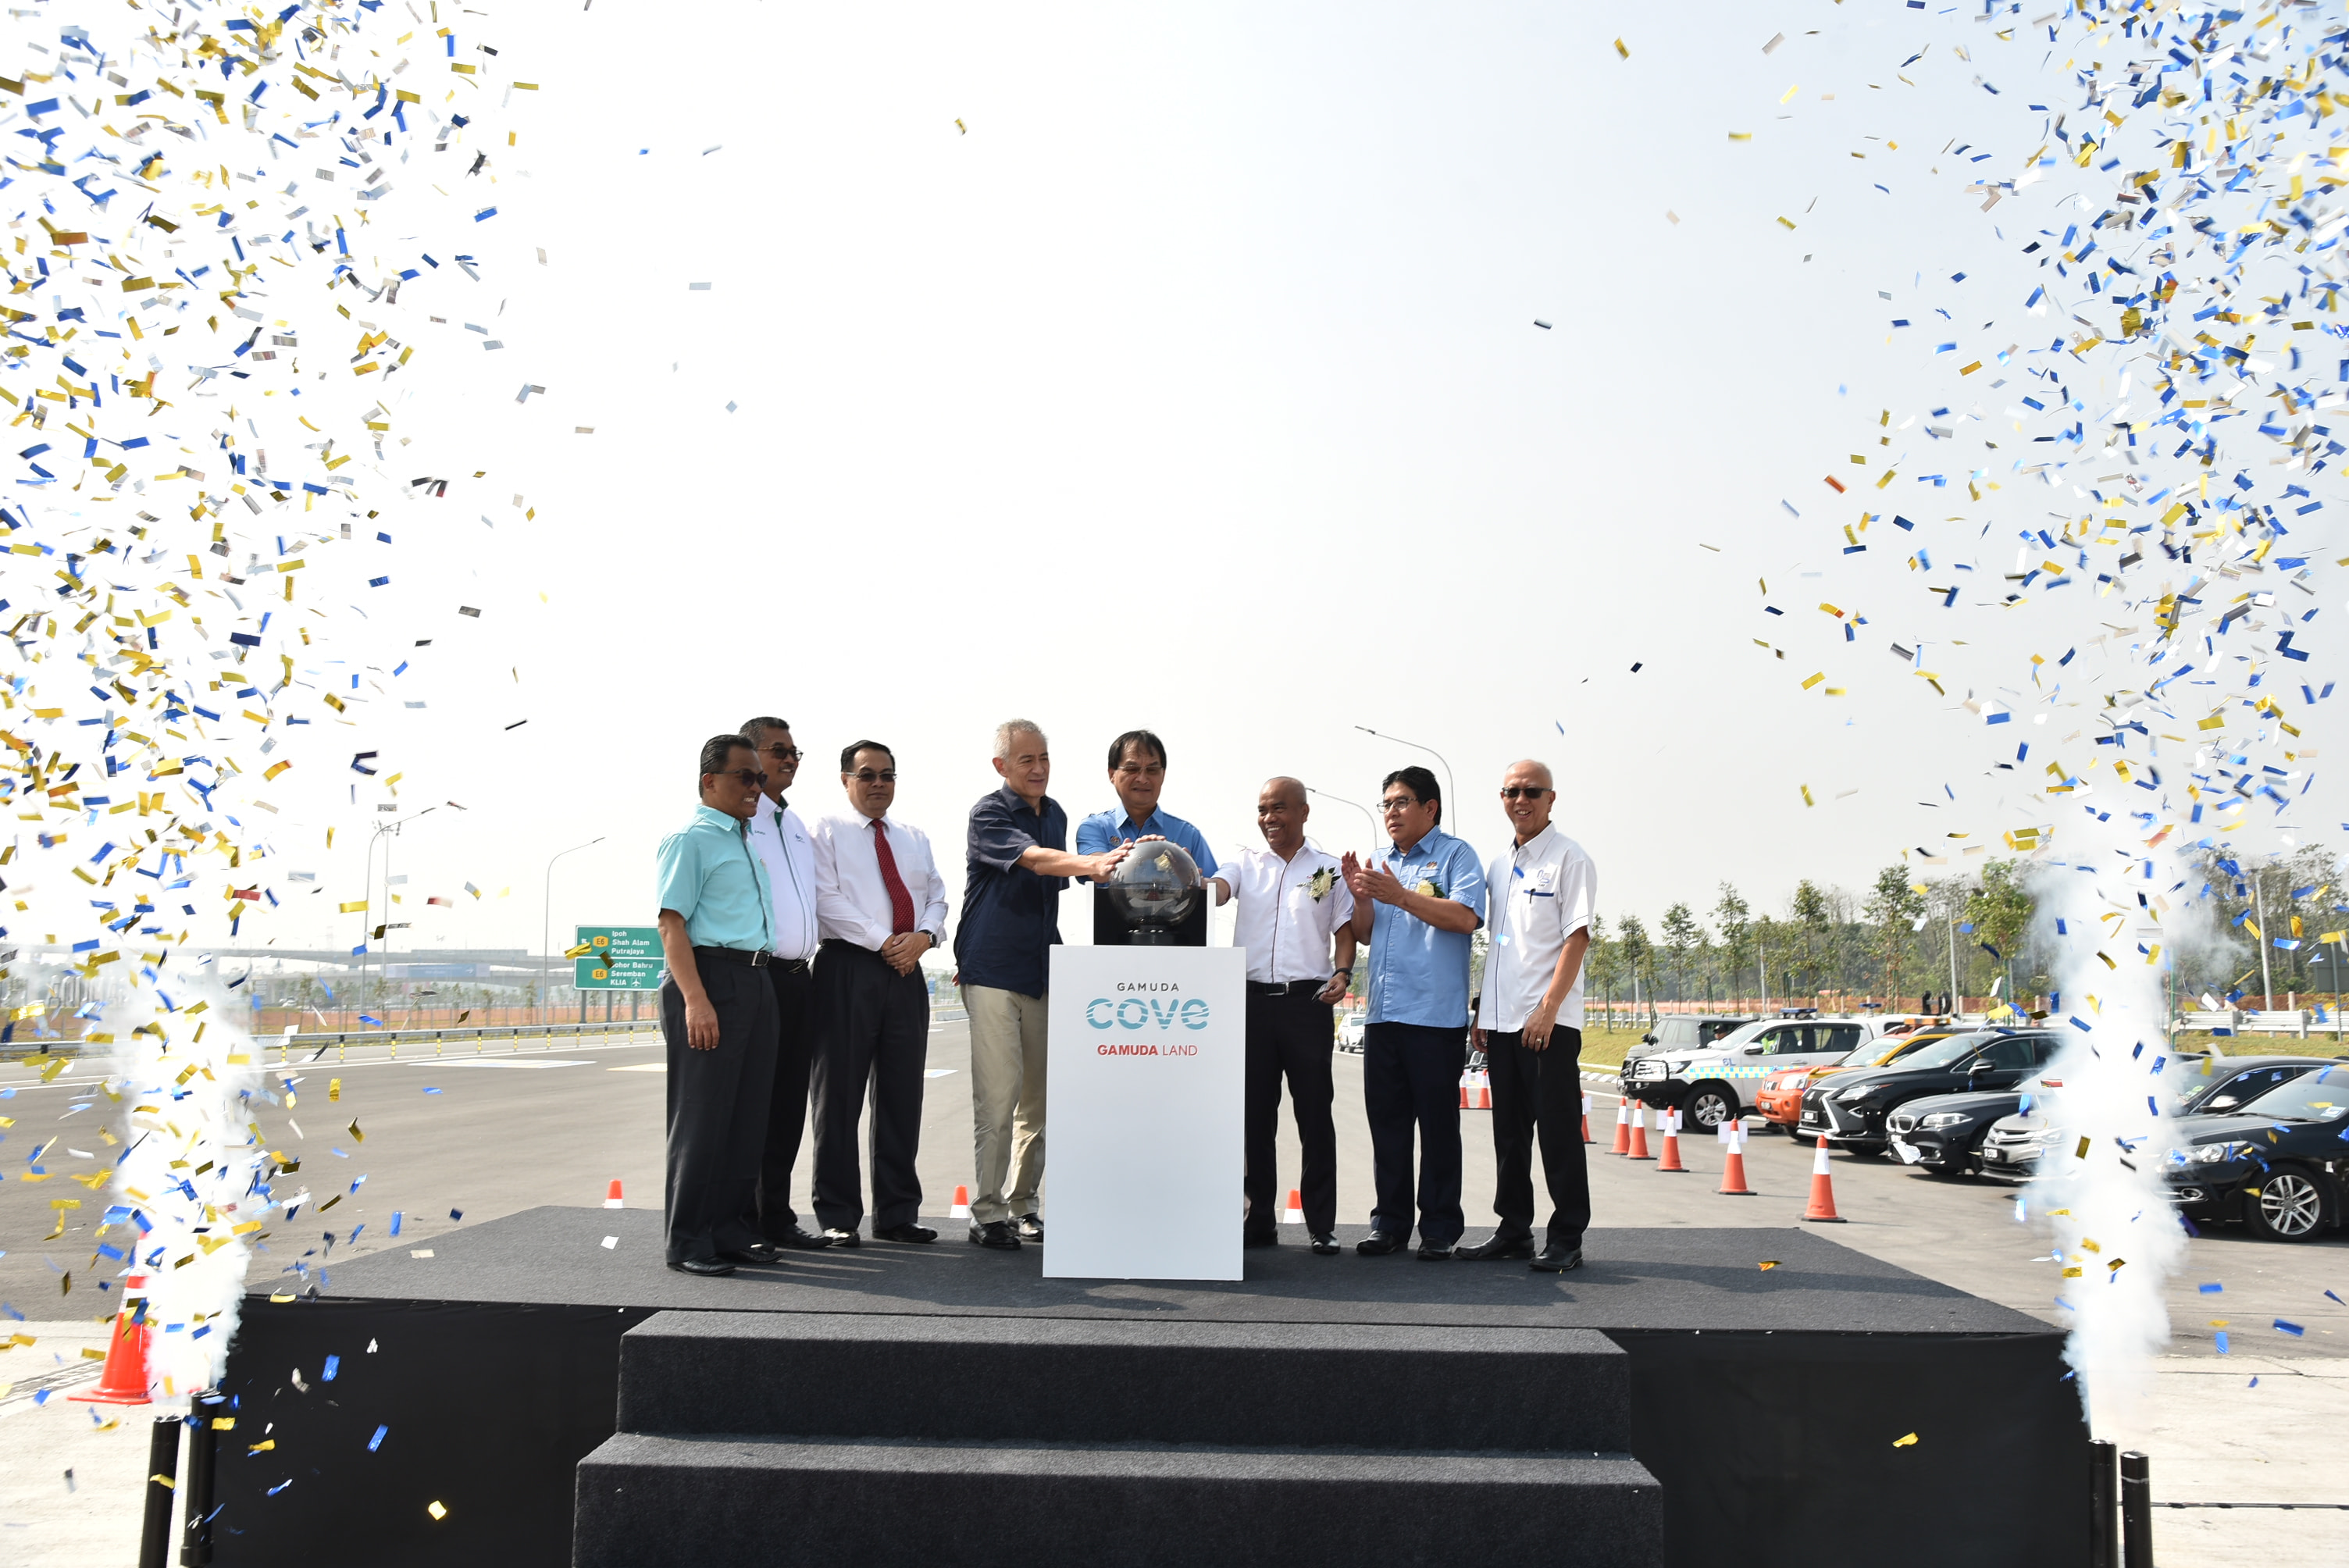 Works Minister Baru Bian (centre) launching the Gamuda Cove Interchange in Dengkil, Selangor, yesterday. With him are Gamuda Bhd group managing director Datuk Lin Yun Ling (third from left), Gamuda Land executive director Datuk Abdul Sahak Safi (third from right) and other officials. PIC BY AHMAD IRHAM MOHD NOOR